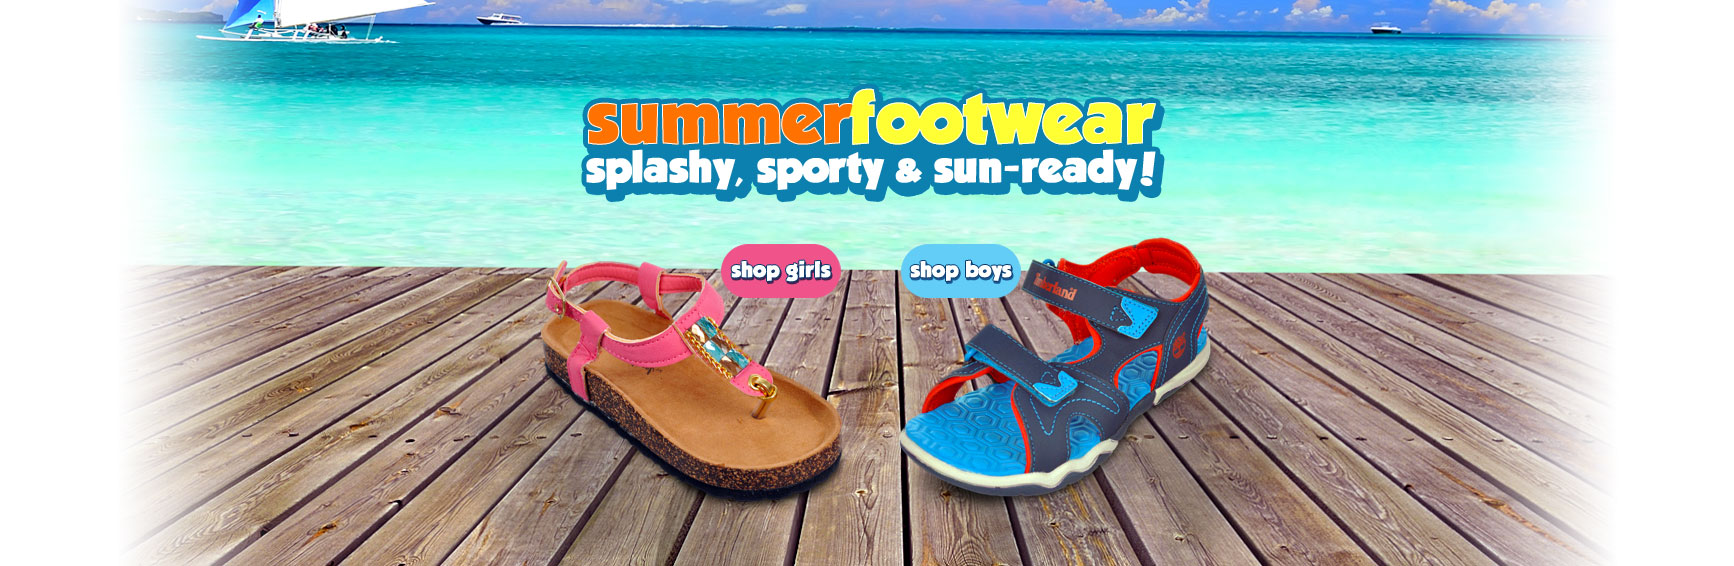 Summer Footwear: Splashy, sporty and sun-ready - Shop Boys and Girls Summer Shoes